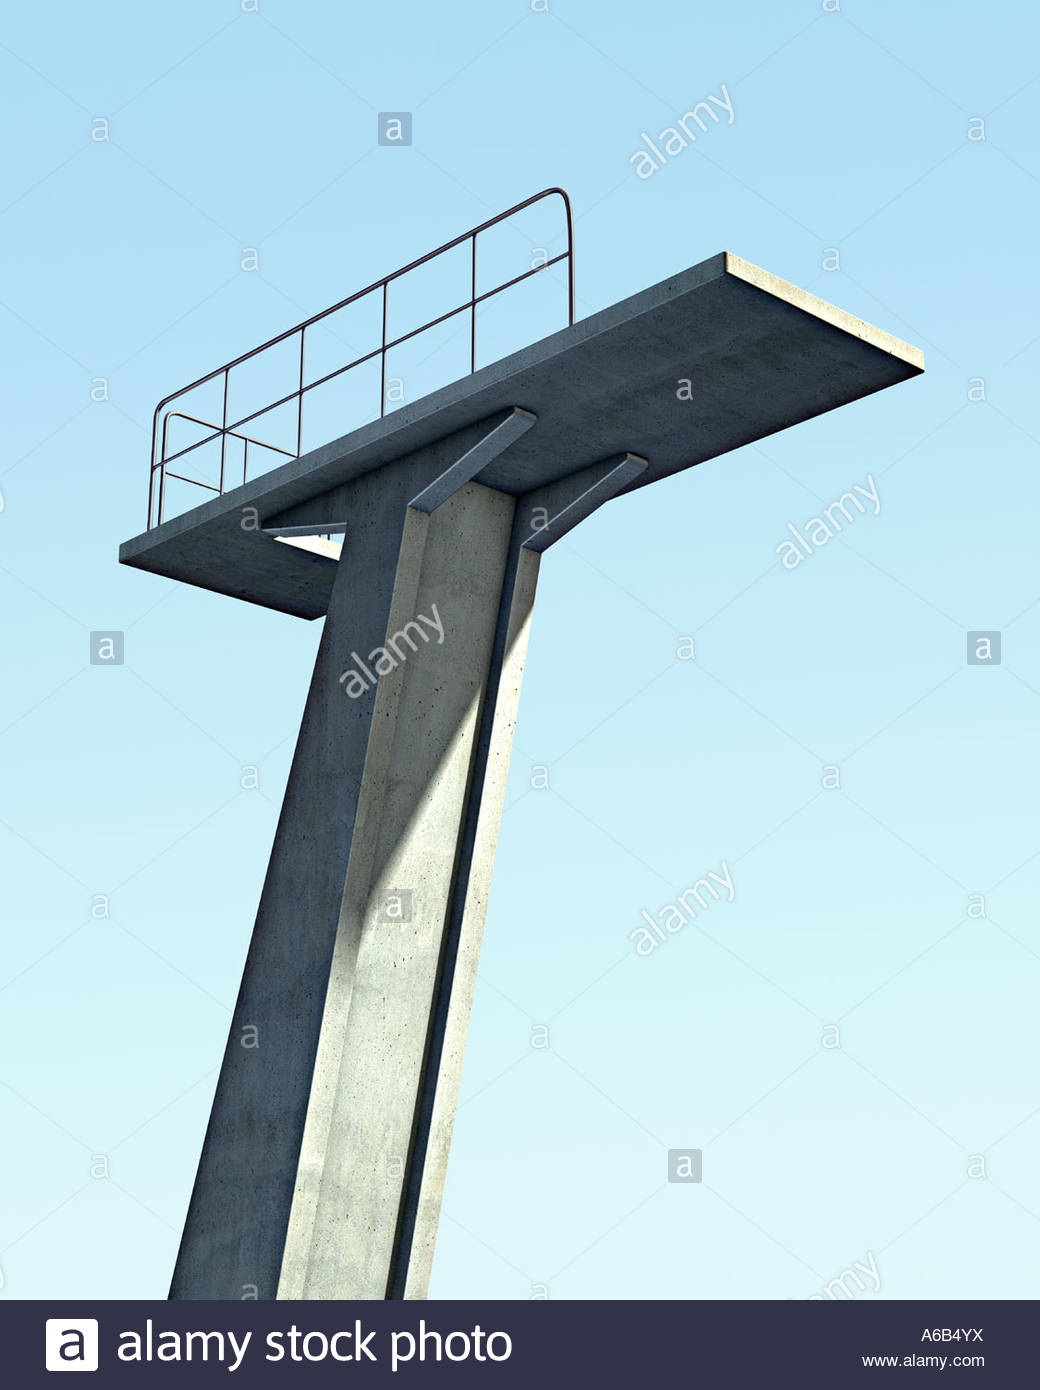 Image Gallery high diving board